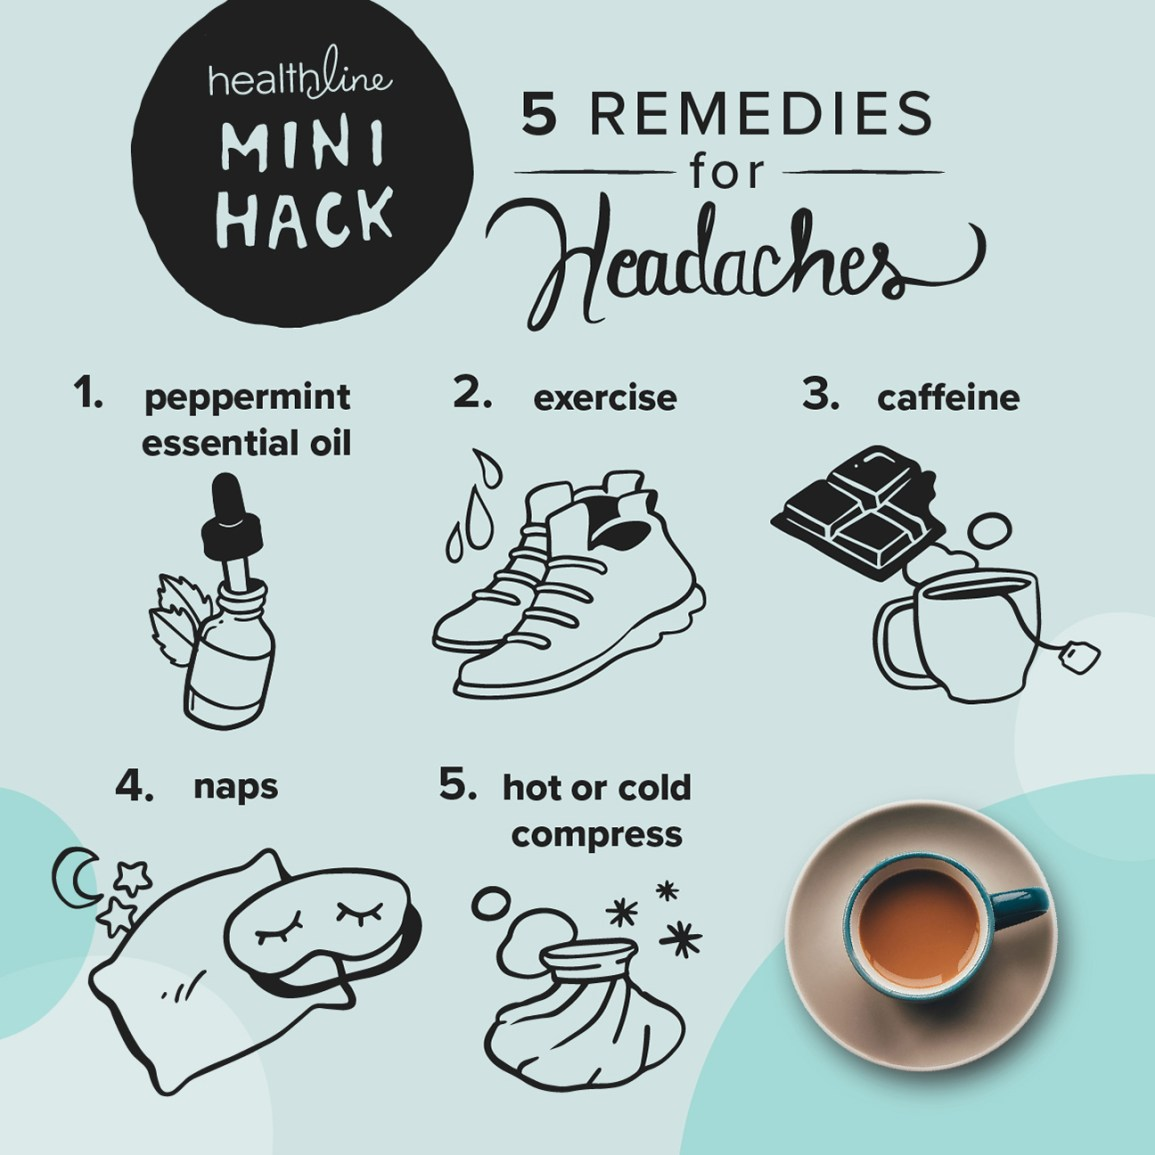 5 Easy Remedies to Try for a Headache